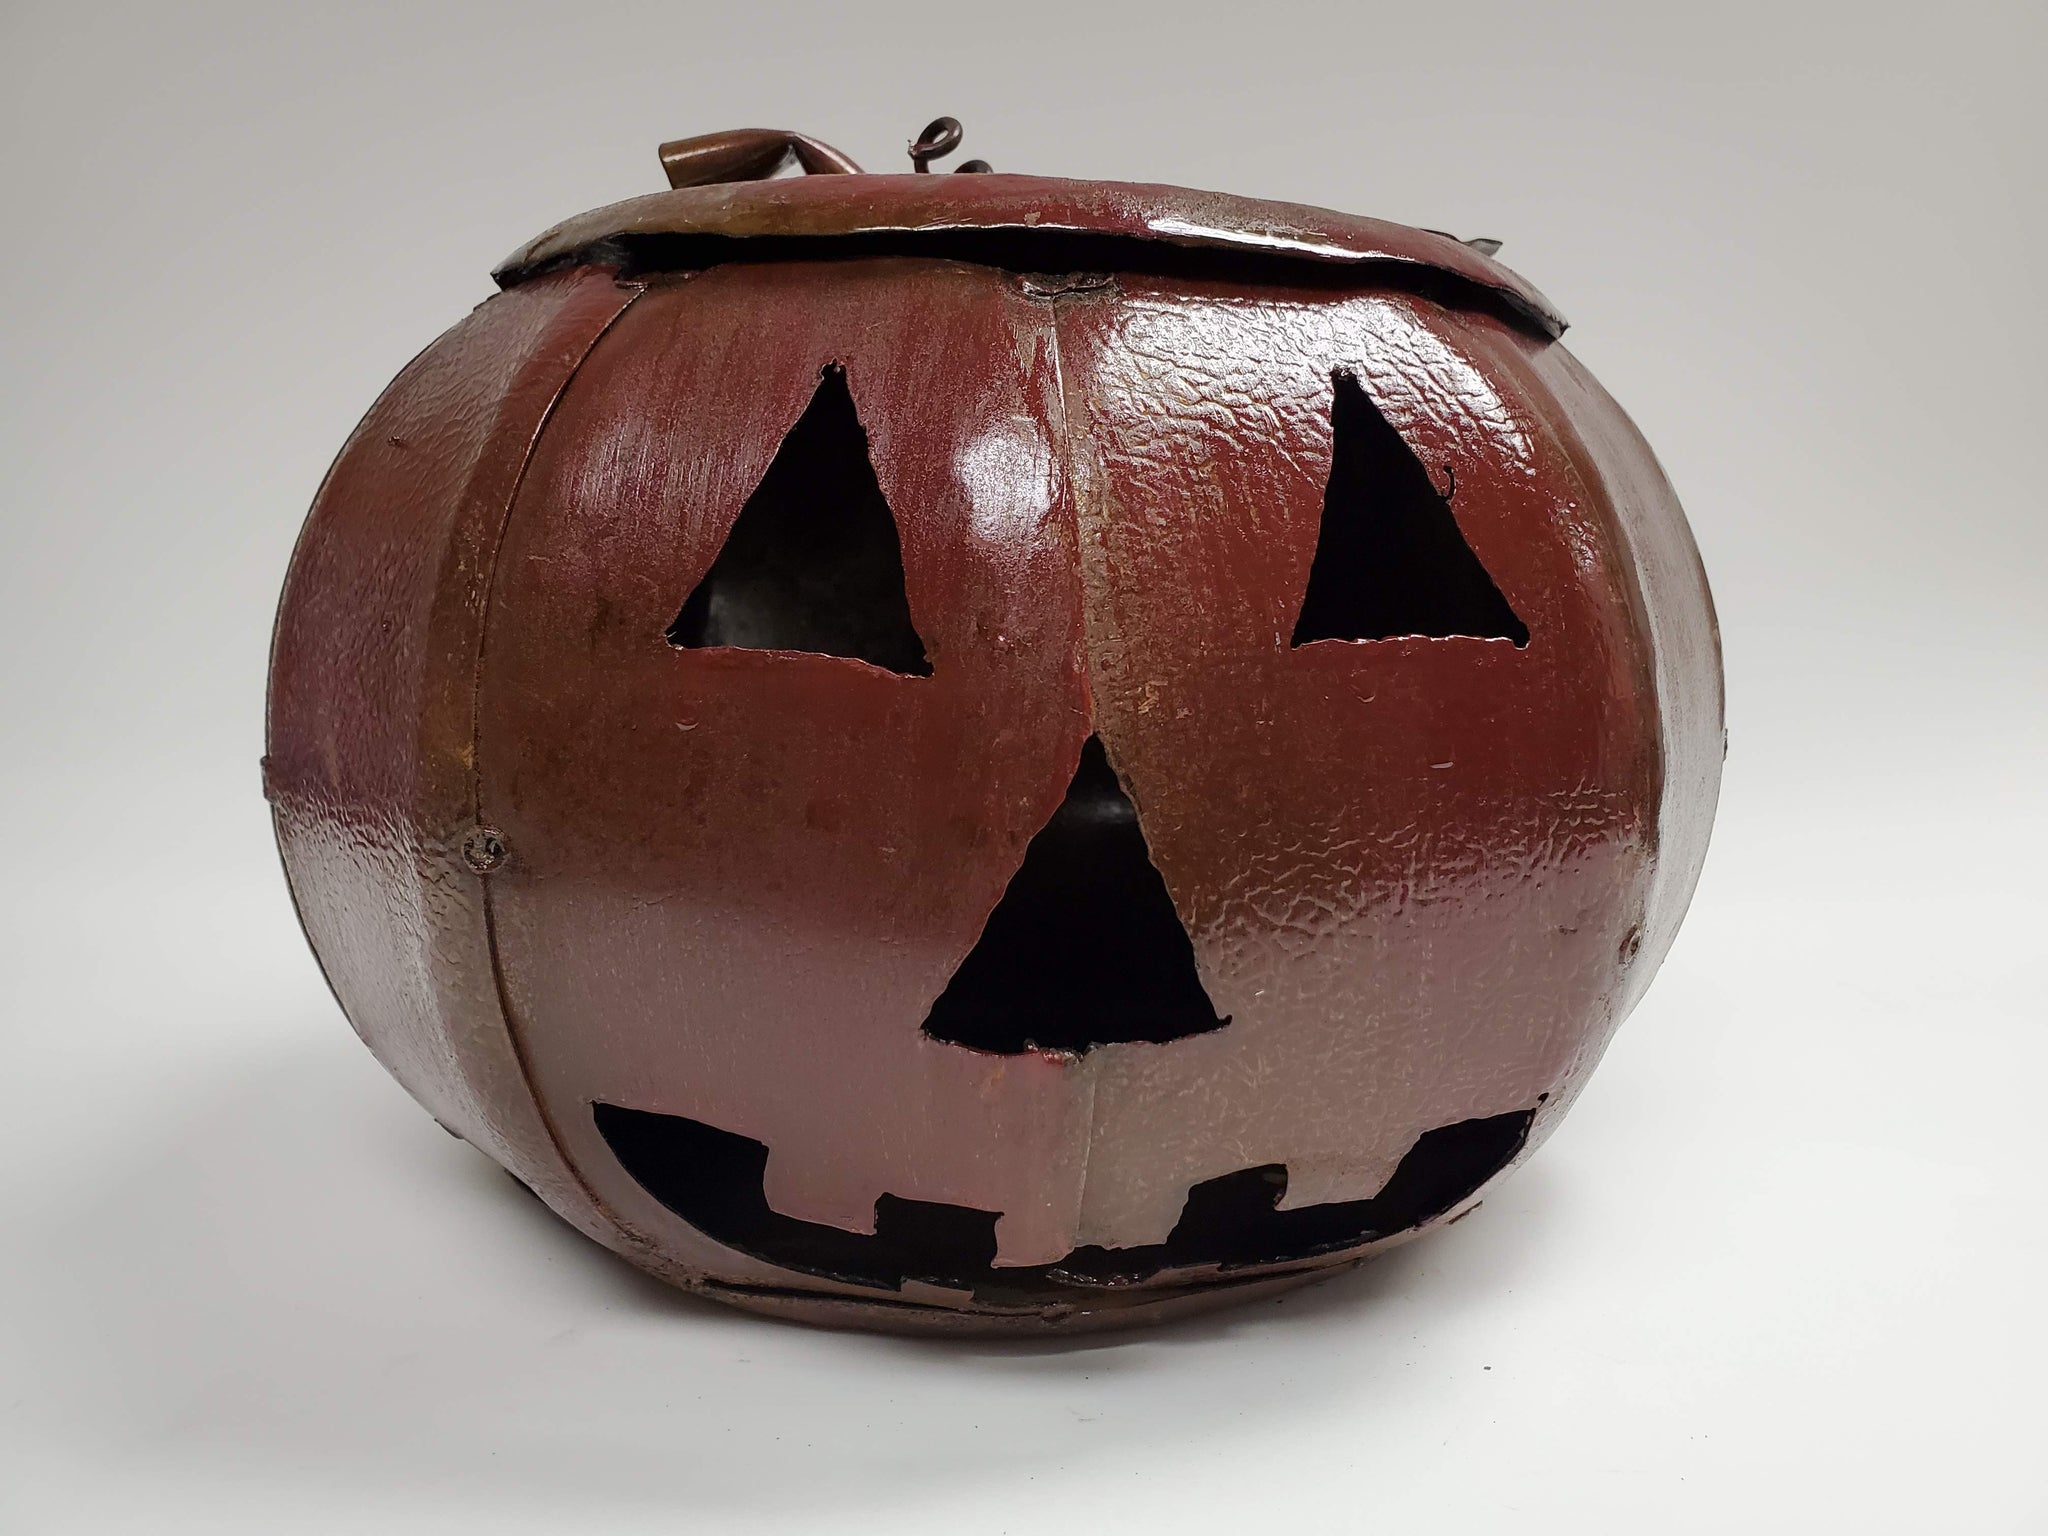 Medium Pumpkin - Red/Rust colored - Scrap Metal Art